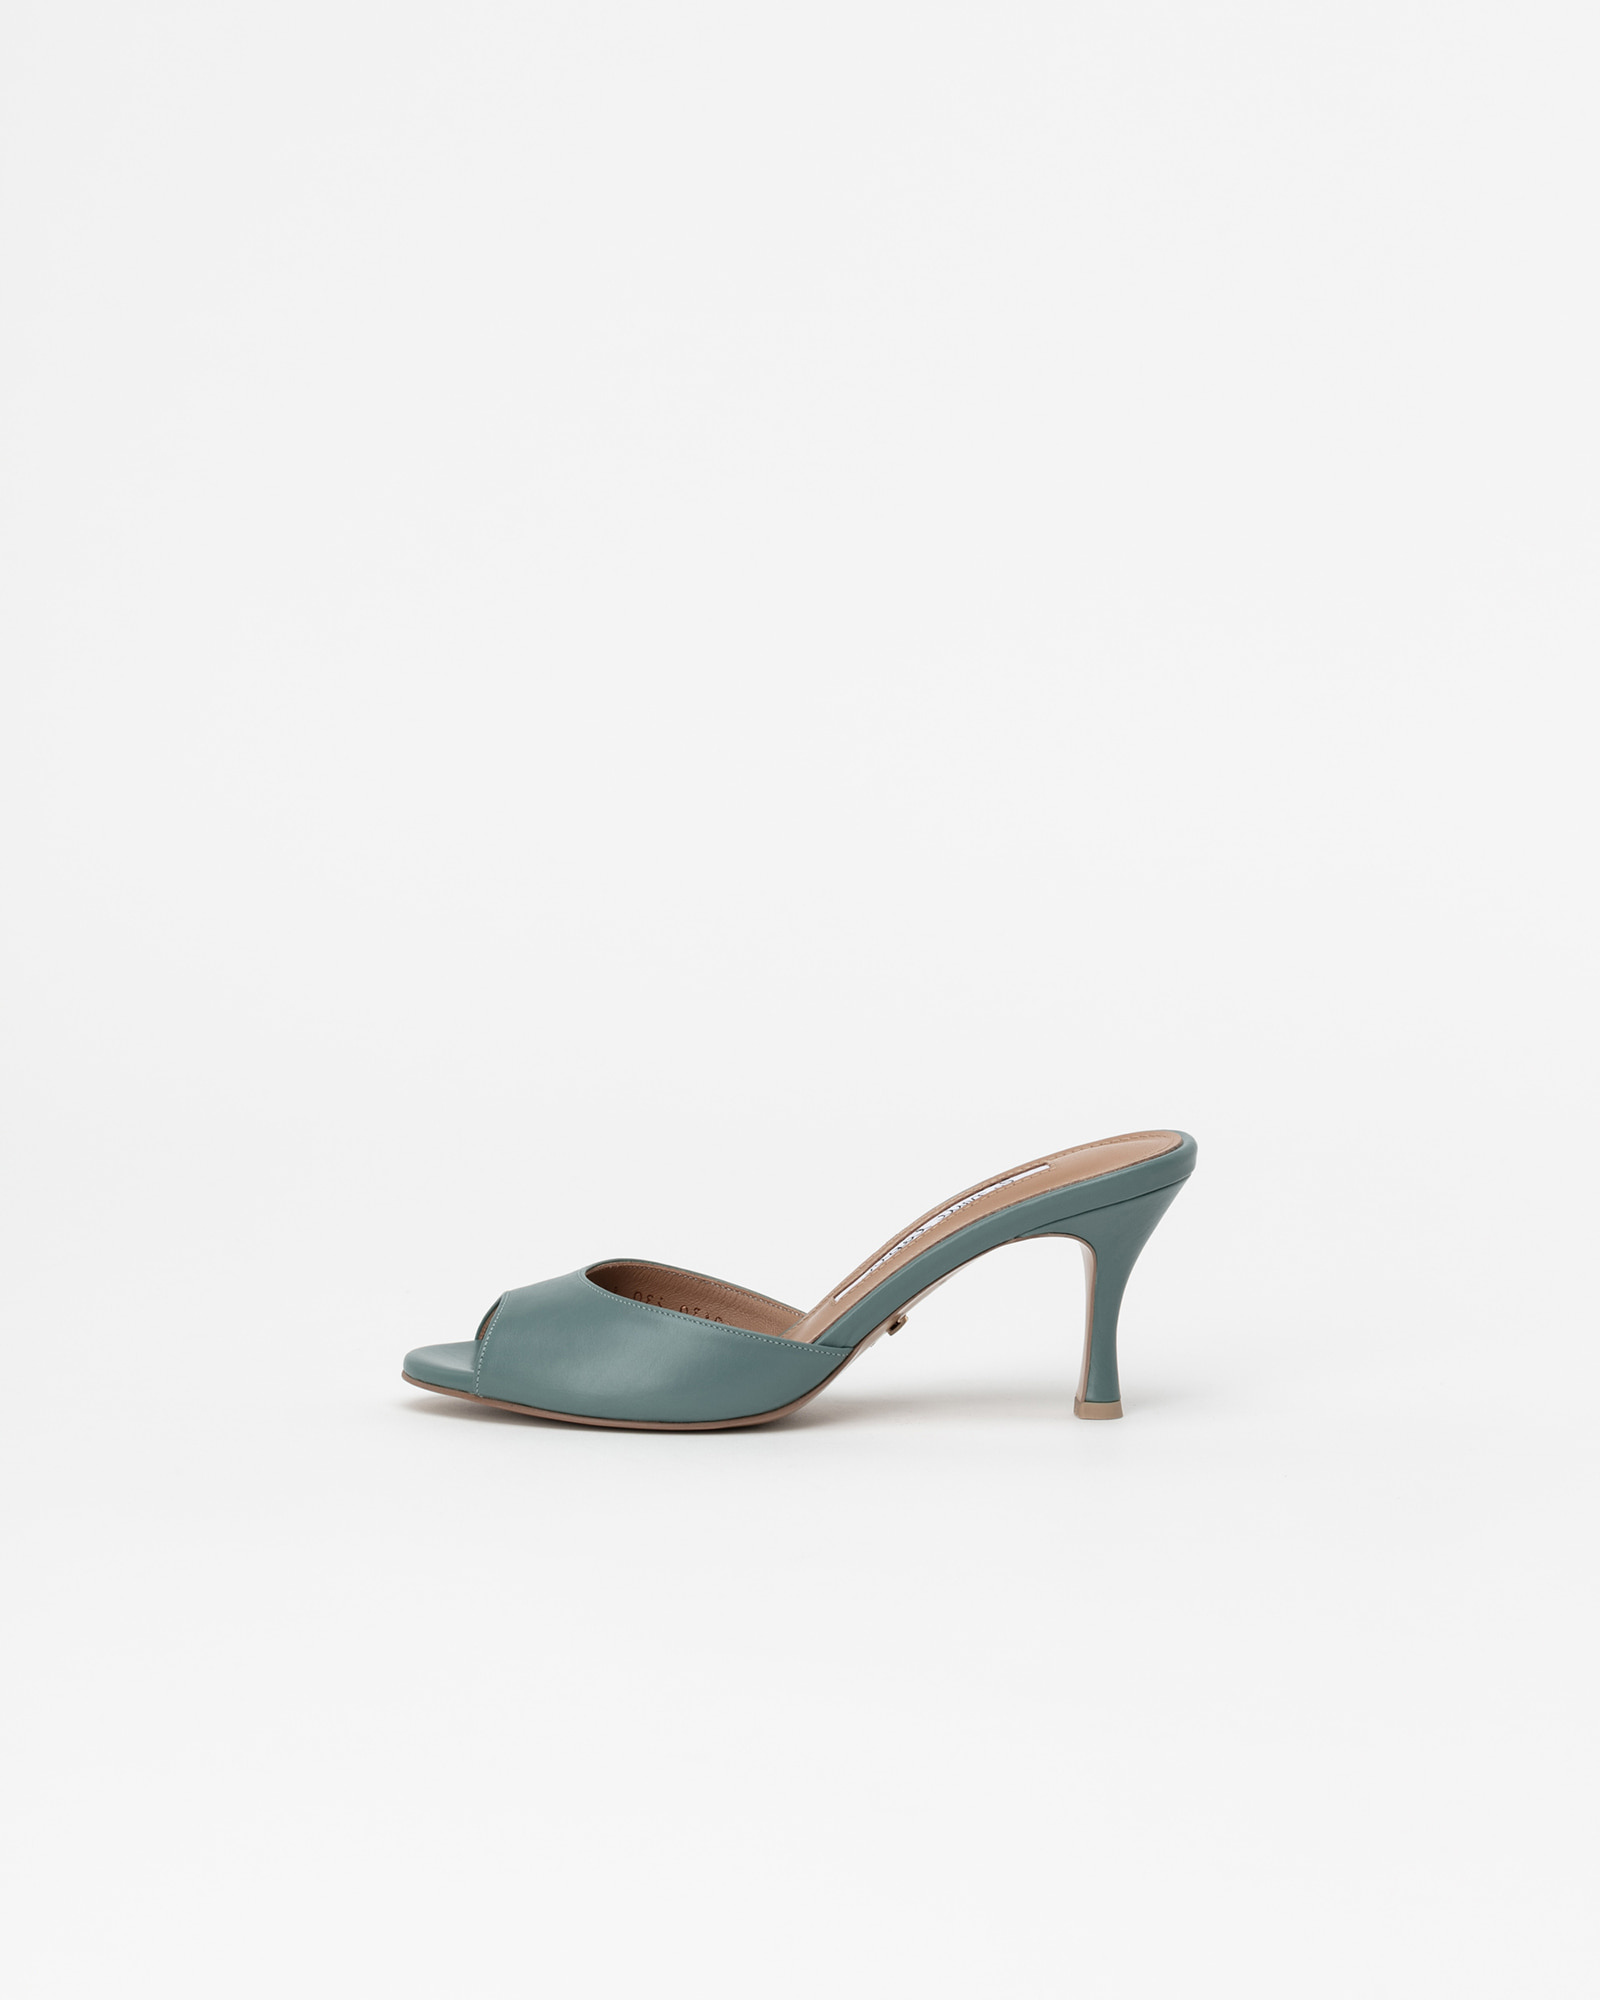 Chartres Mules in Mint Blue Baby Calf